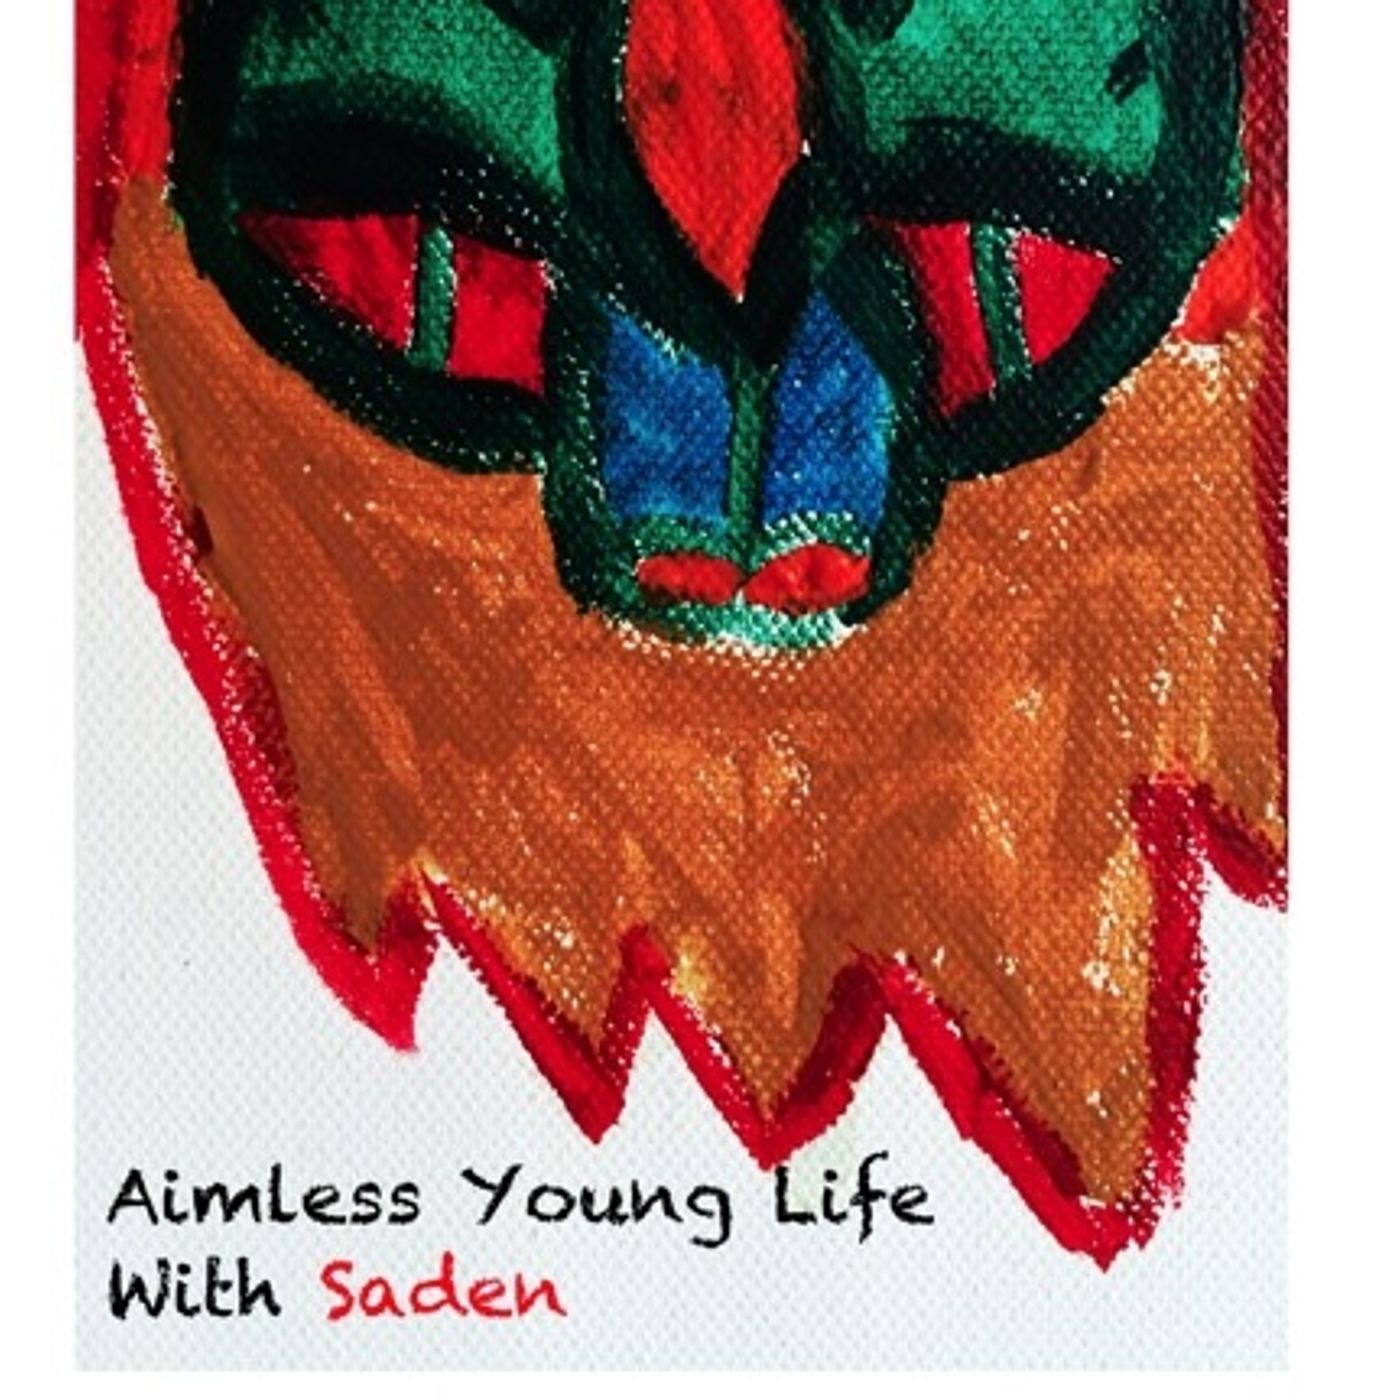 Aimless Young Life